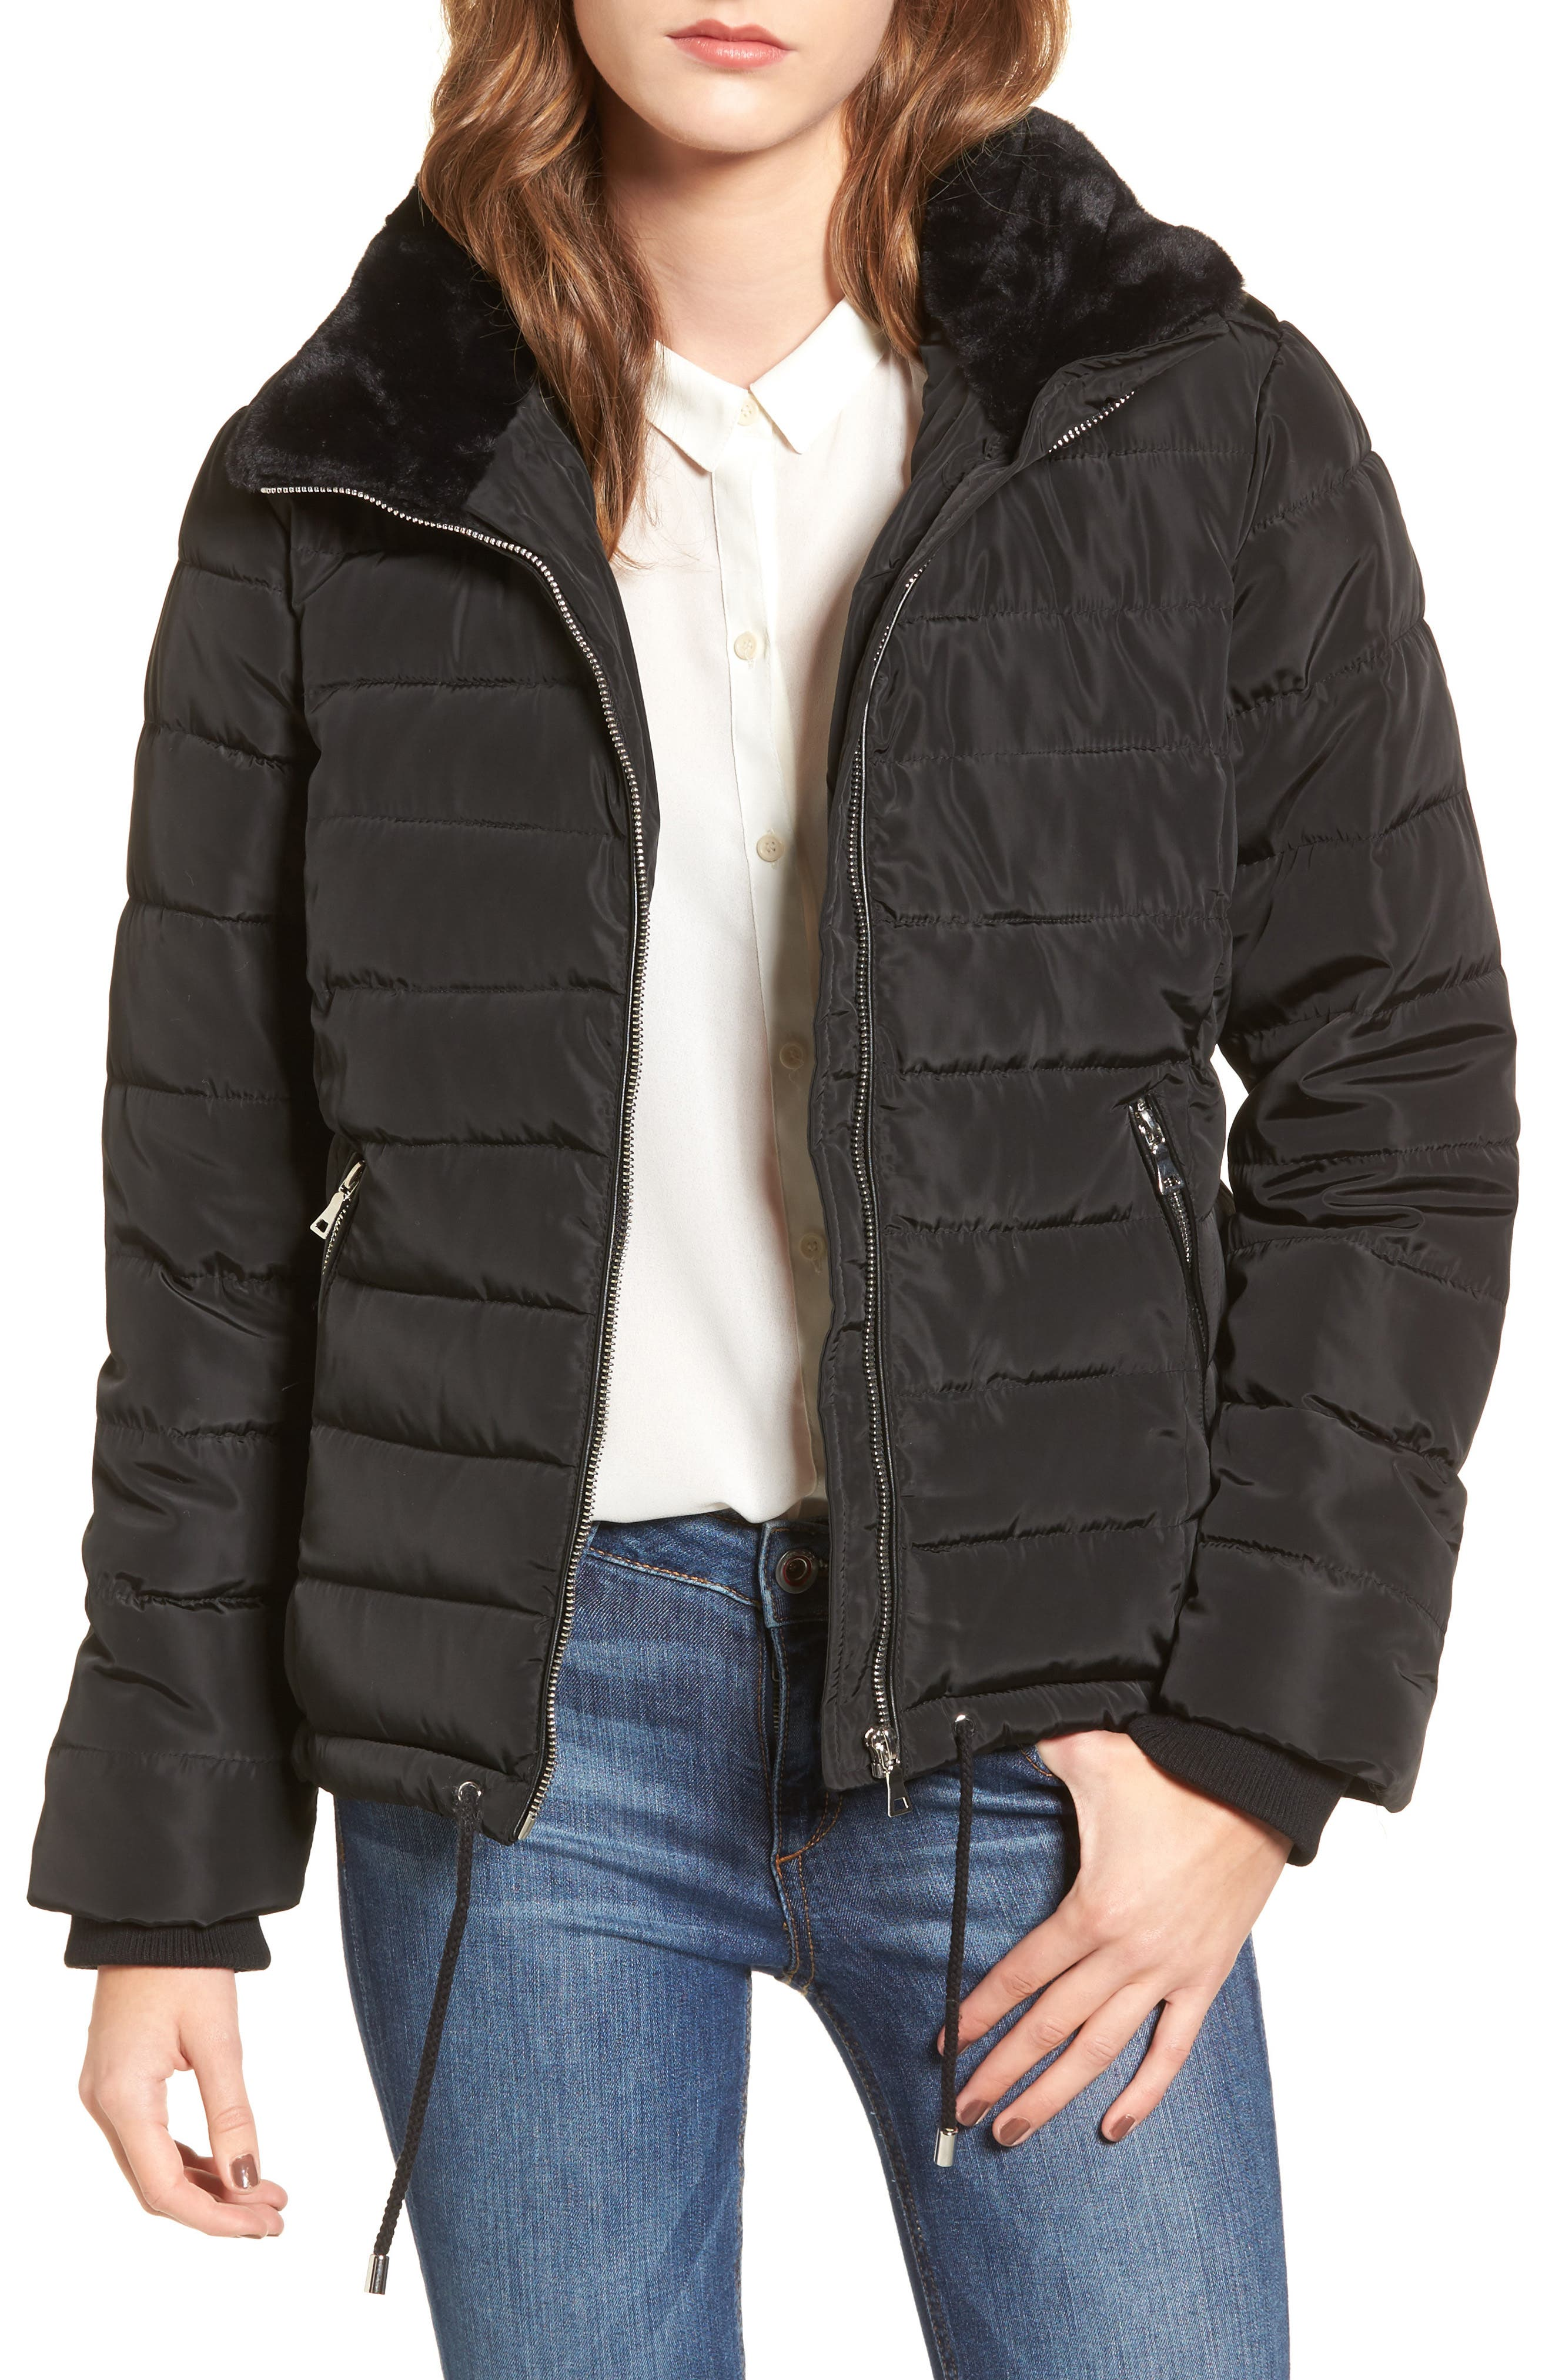 Puffer Jacket with Faux Fur,                             Main thumbnail 1, color,                             Black